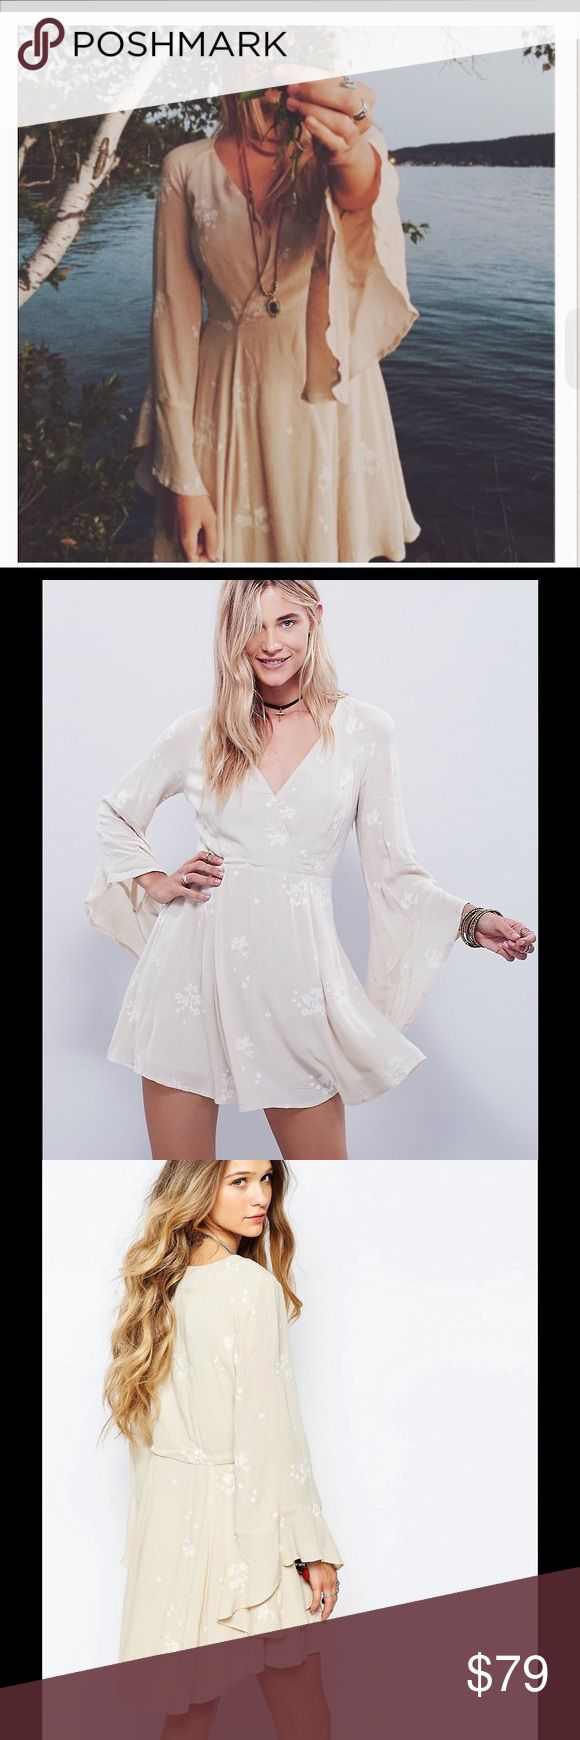 """✨ NEW NWT FREE PEOPLE Jasmine embroidered dress 2 BRAND NEW with tags! Size 2 pretty TTS! An airy Free People mini dress with a flared skirt. Ruffle cuffs and floral embroidery accentuate the romantic feel. Crossover V neckline. Long sleeves. Lined. color is Almond Creme beige Fabric: Gauze. Shell: 100% rayon. Lining: 65% rayon/35% cotton. Hand wash or dry clean. Imported, India. Length: 33in"""" Free People Dresses Mini"""